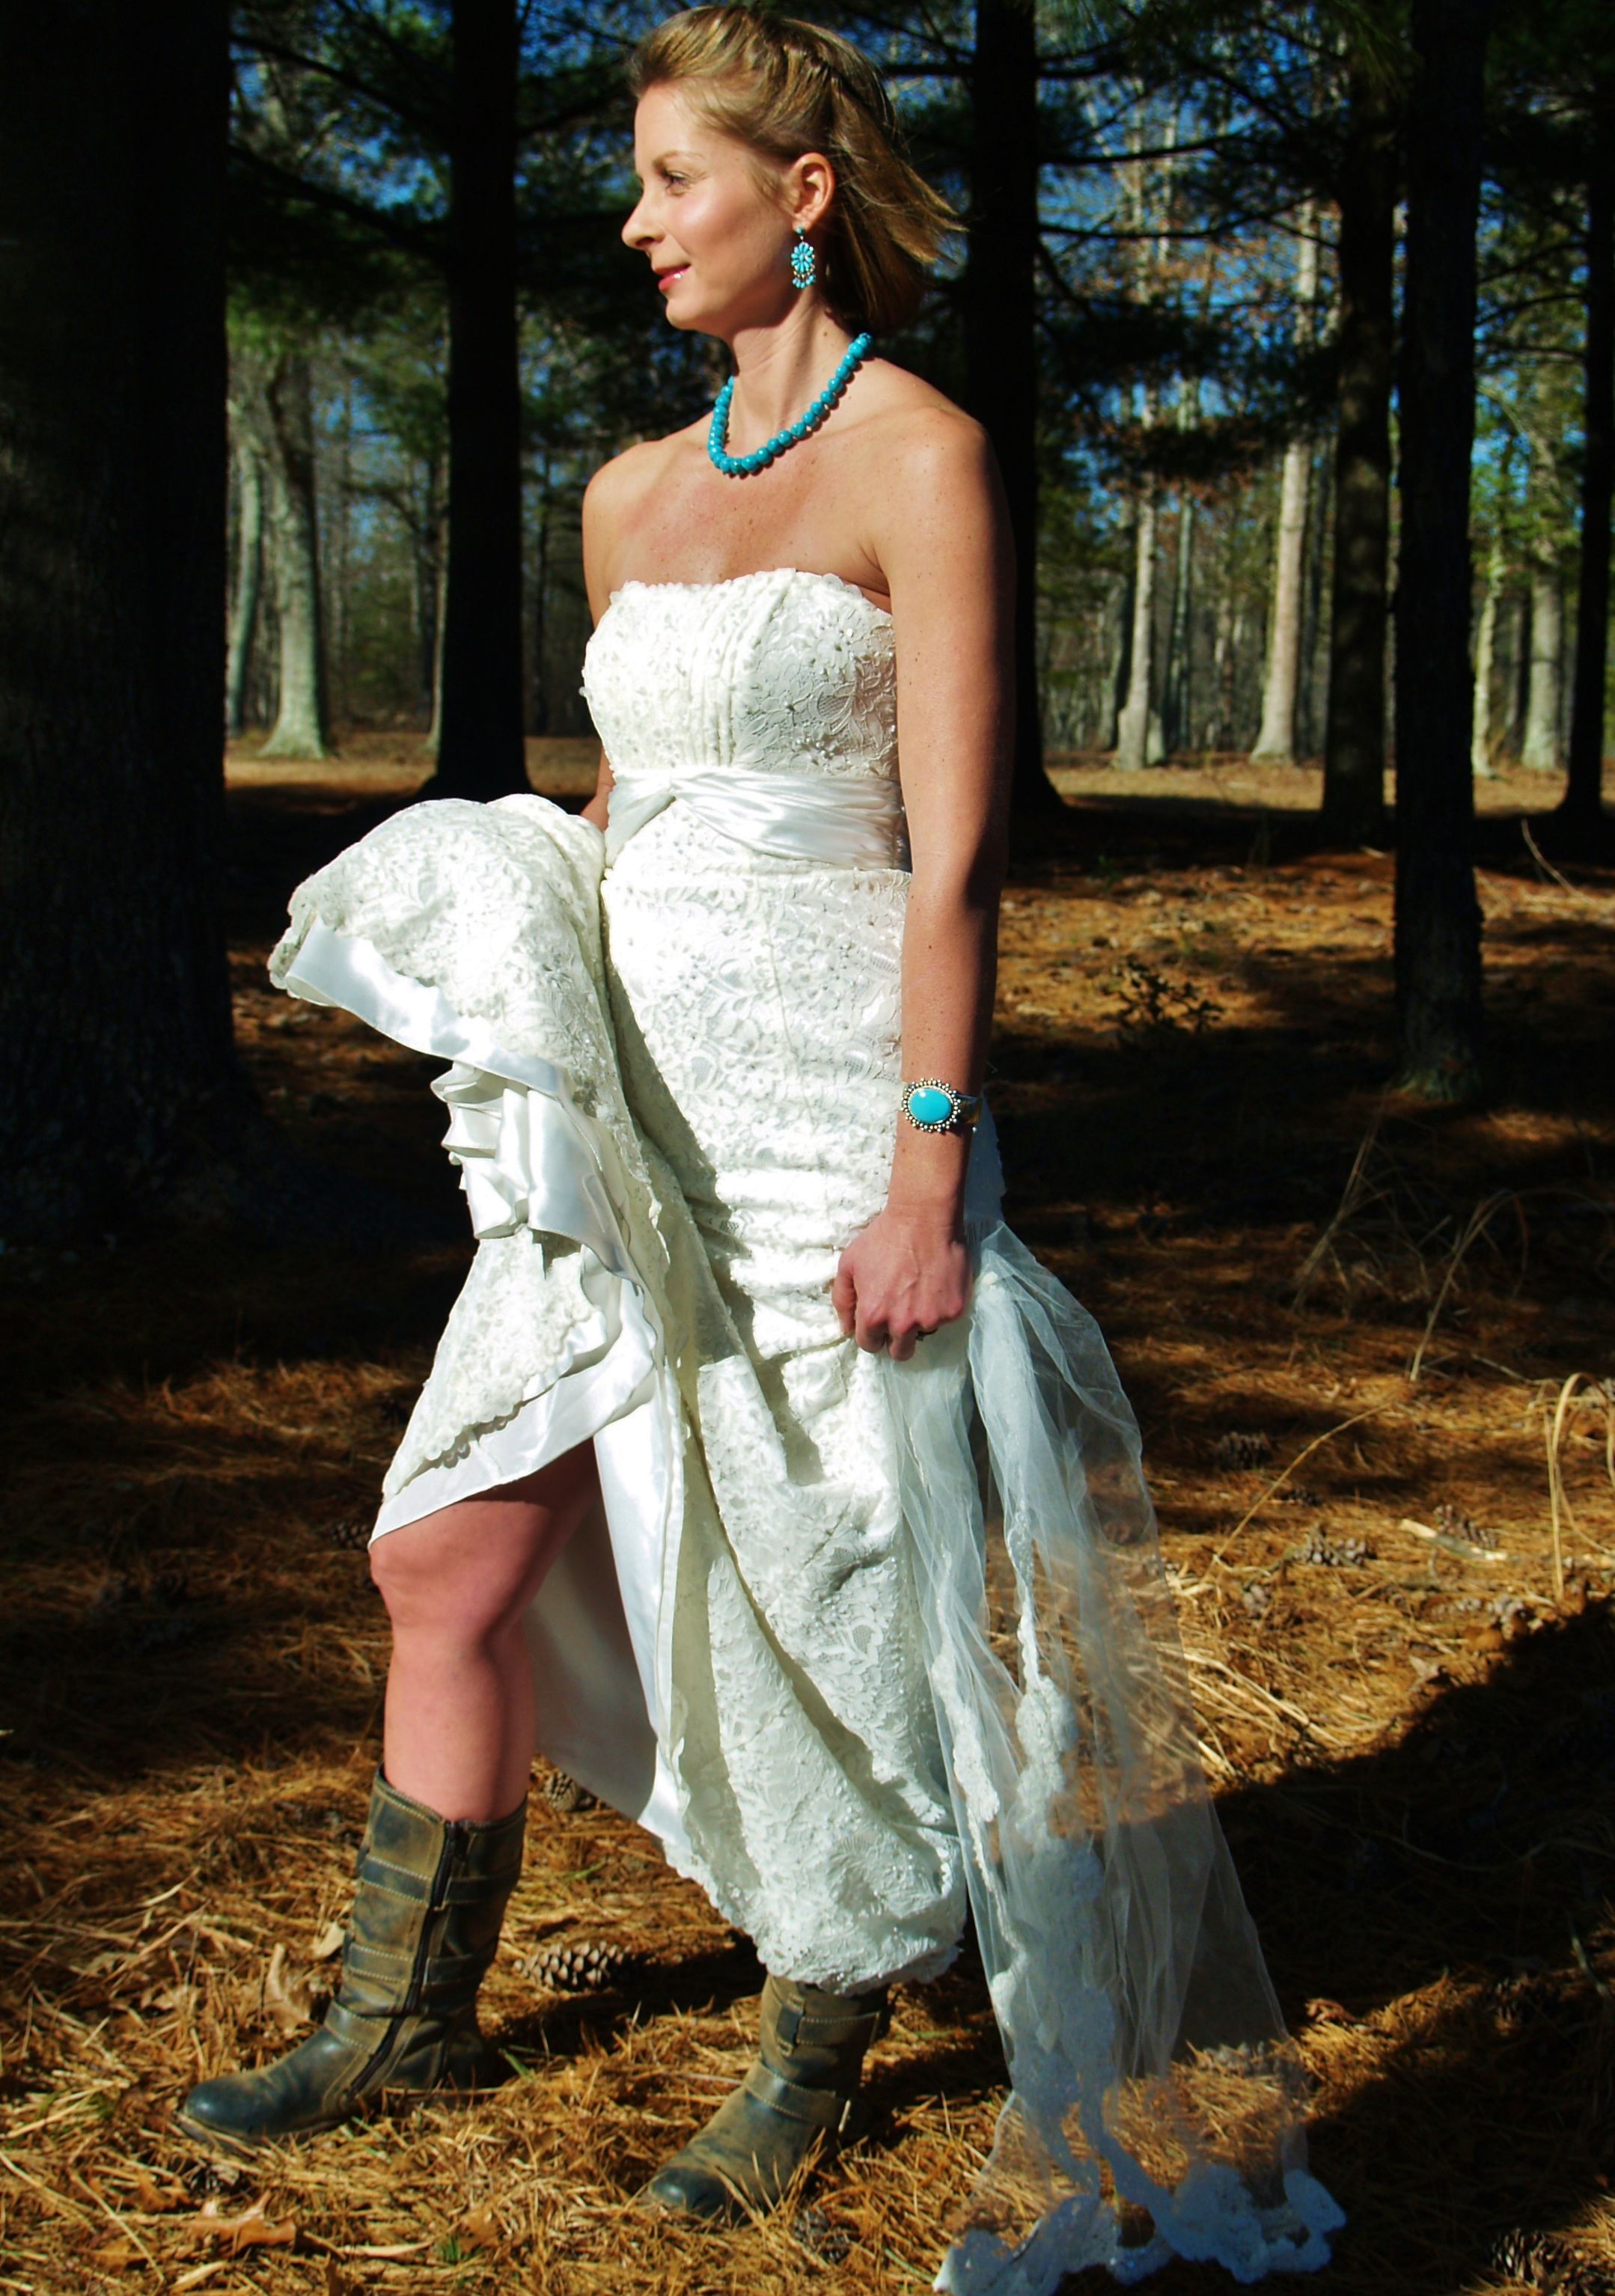 Wedding Dress with Turquoise Jewelry